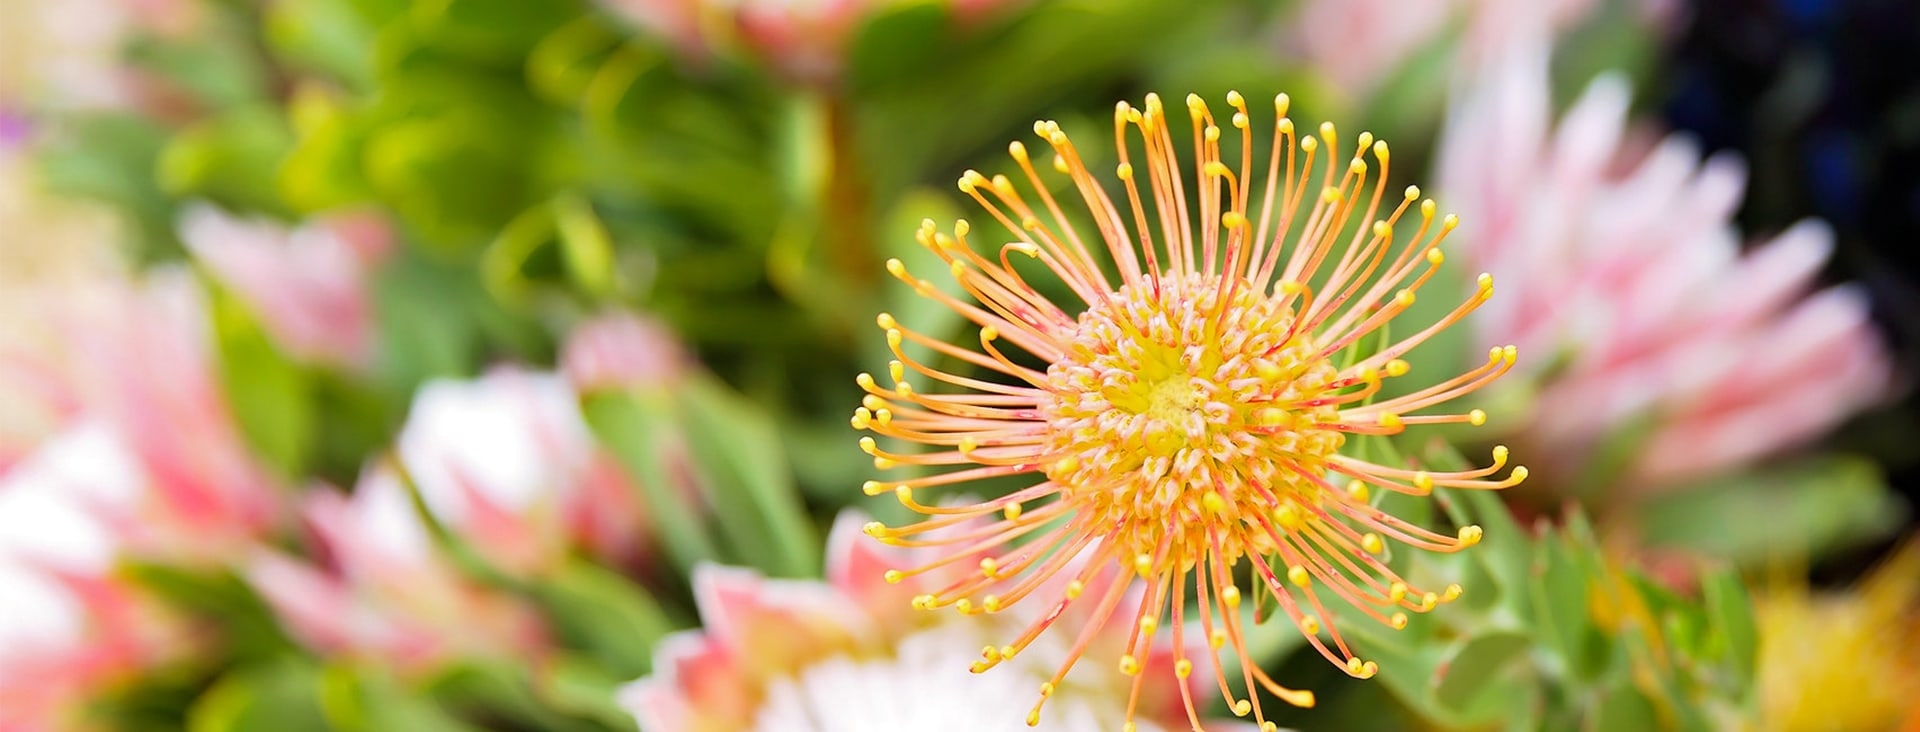 Pincushion and protea flowers.